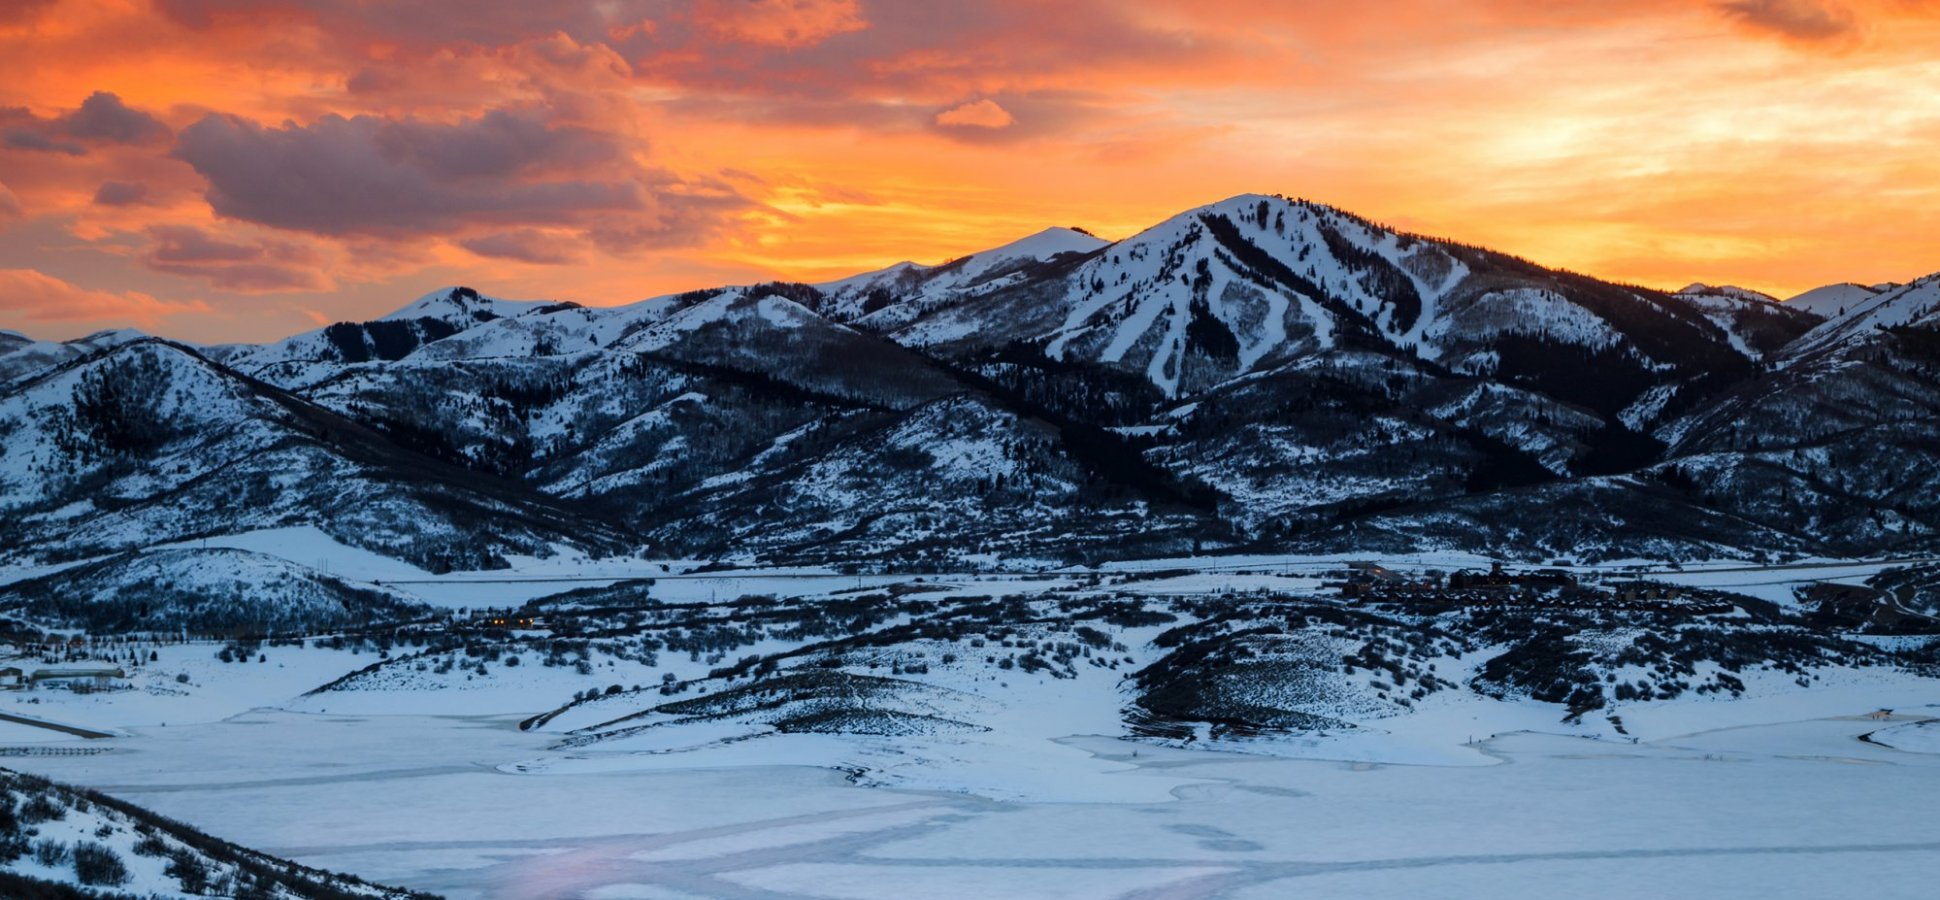 Snow Makes the Utah Mountains Special. The Talented Workforce Does the Same for the Economy.